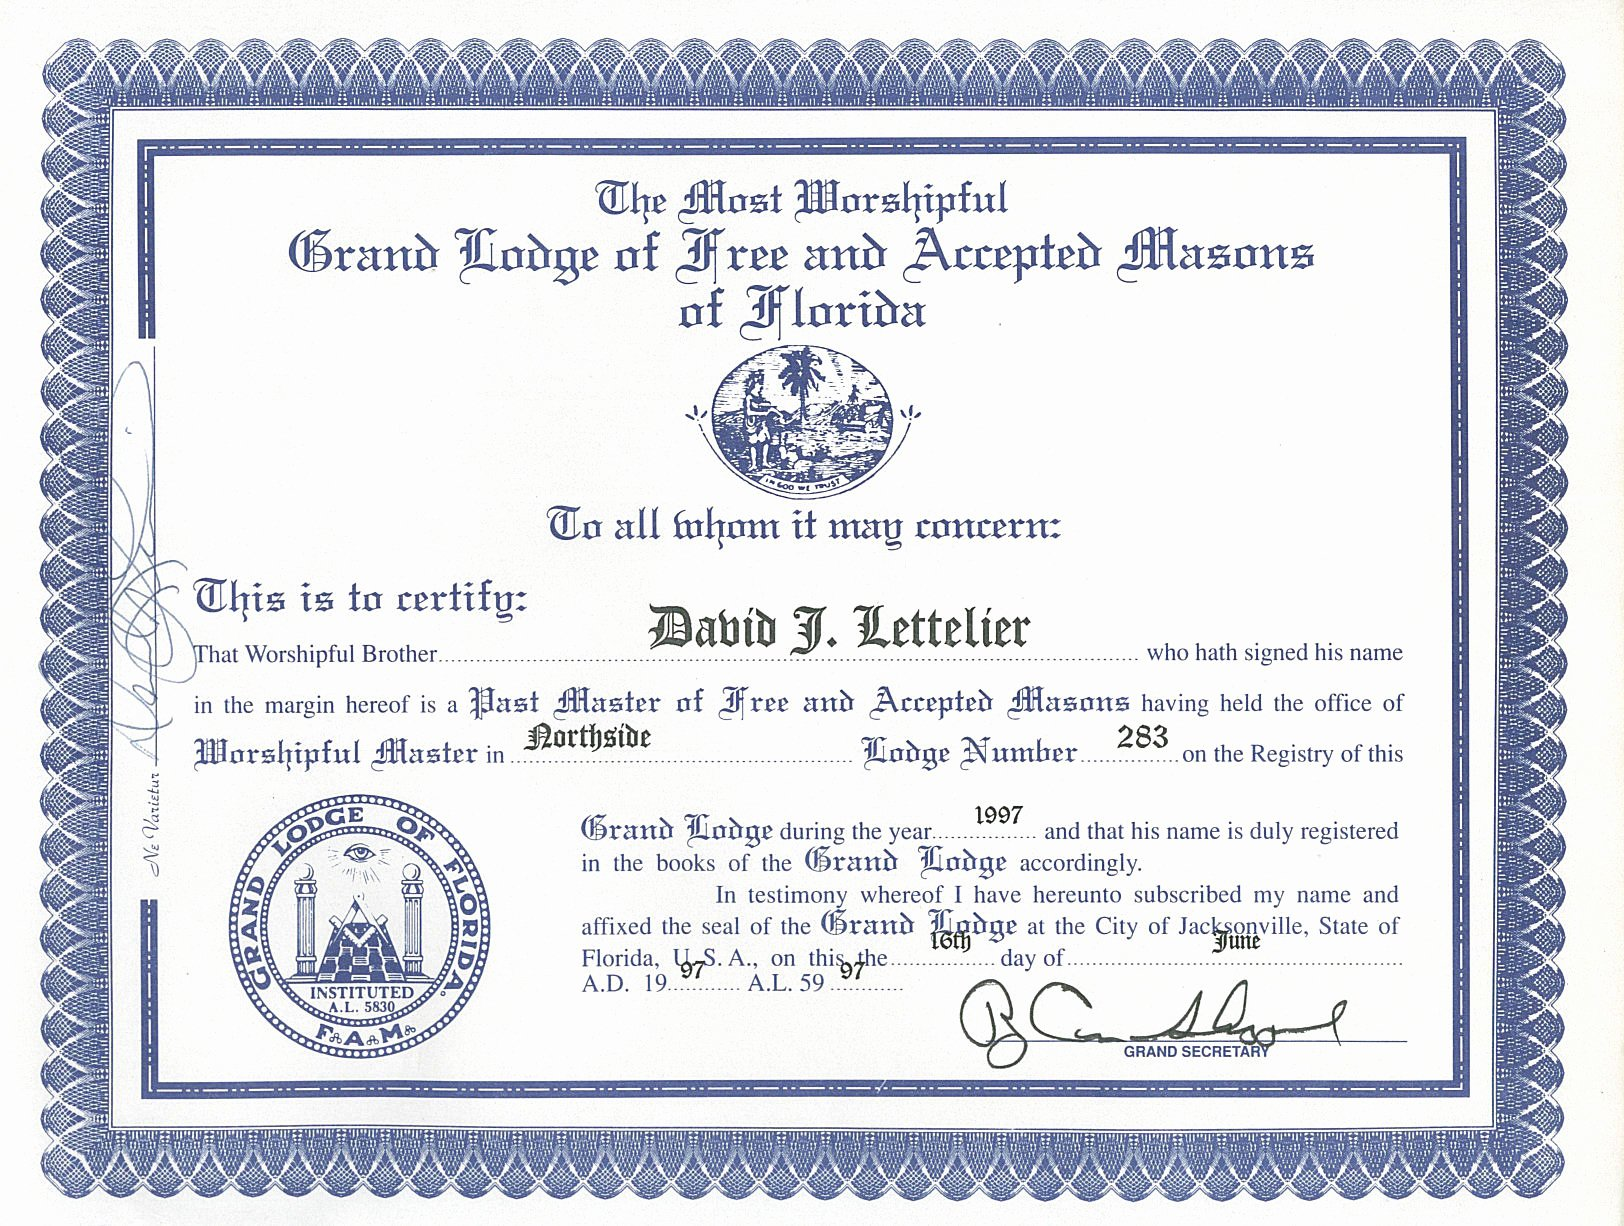 Master Mason Certificate Template Beautiful by Worshipful Brother David J Lettelier